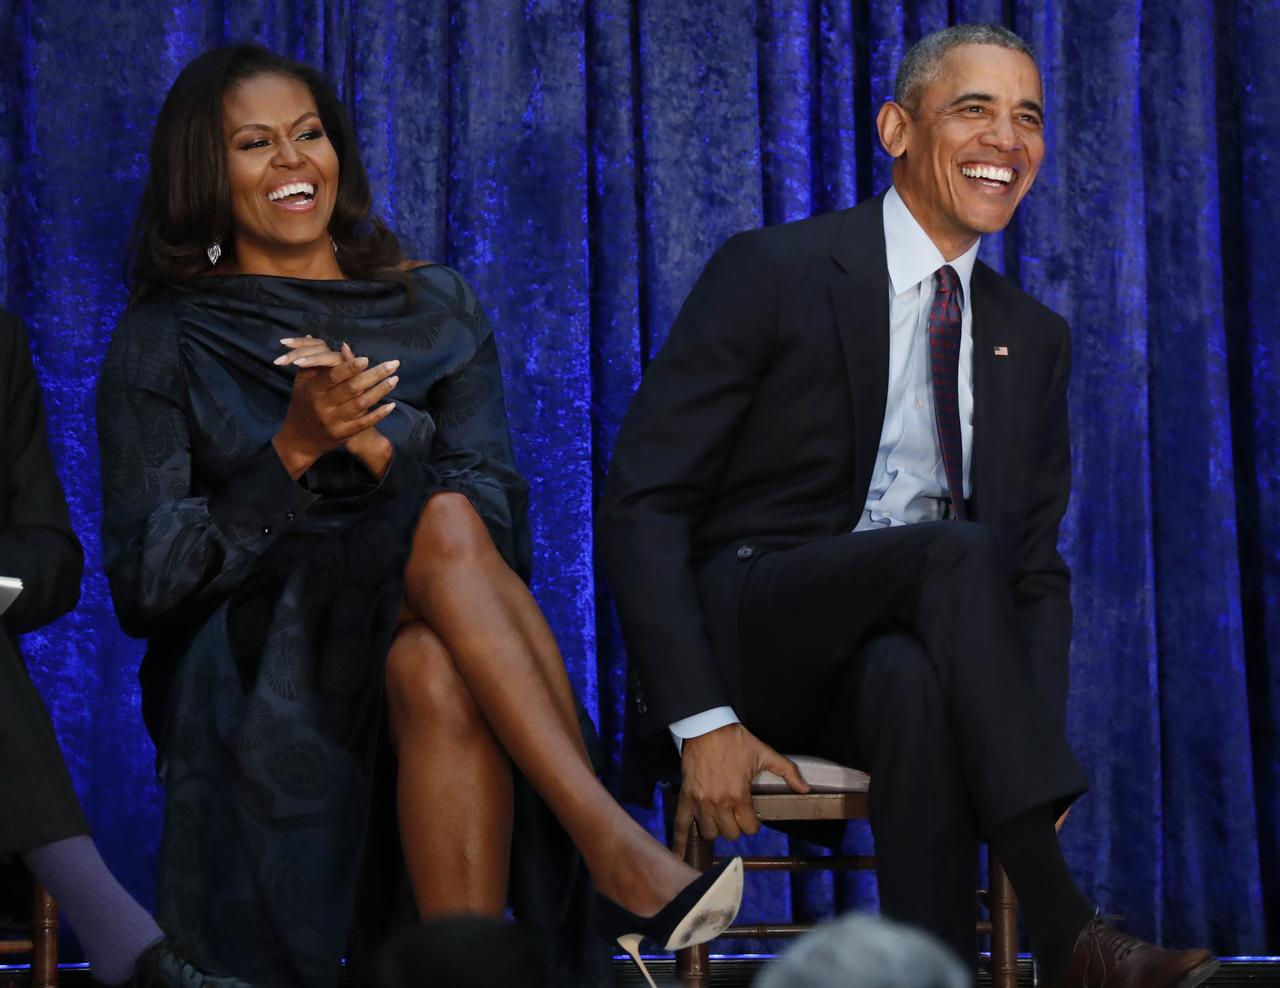 Obamas' Netflix slate features period drama, family show about